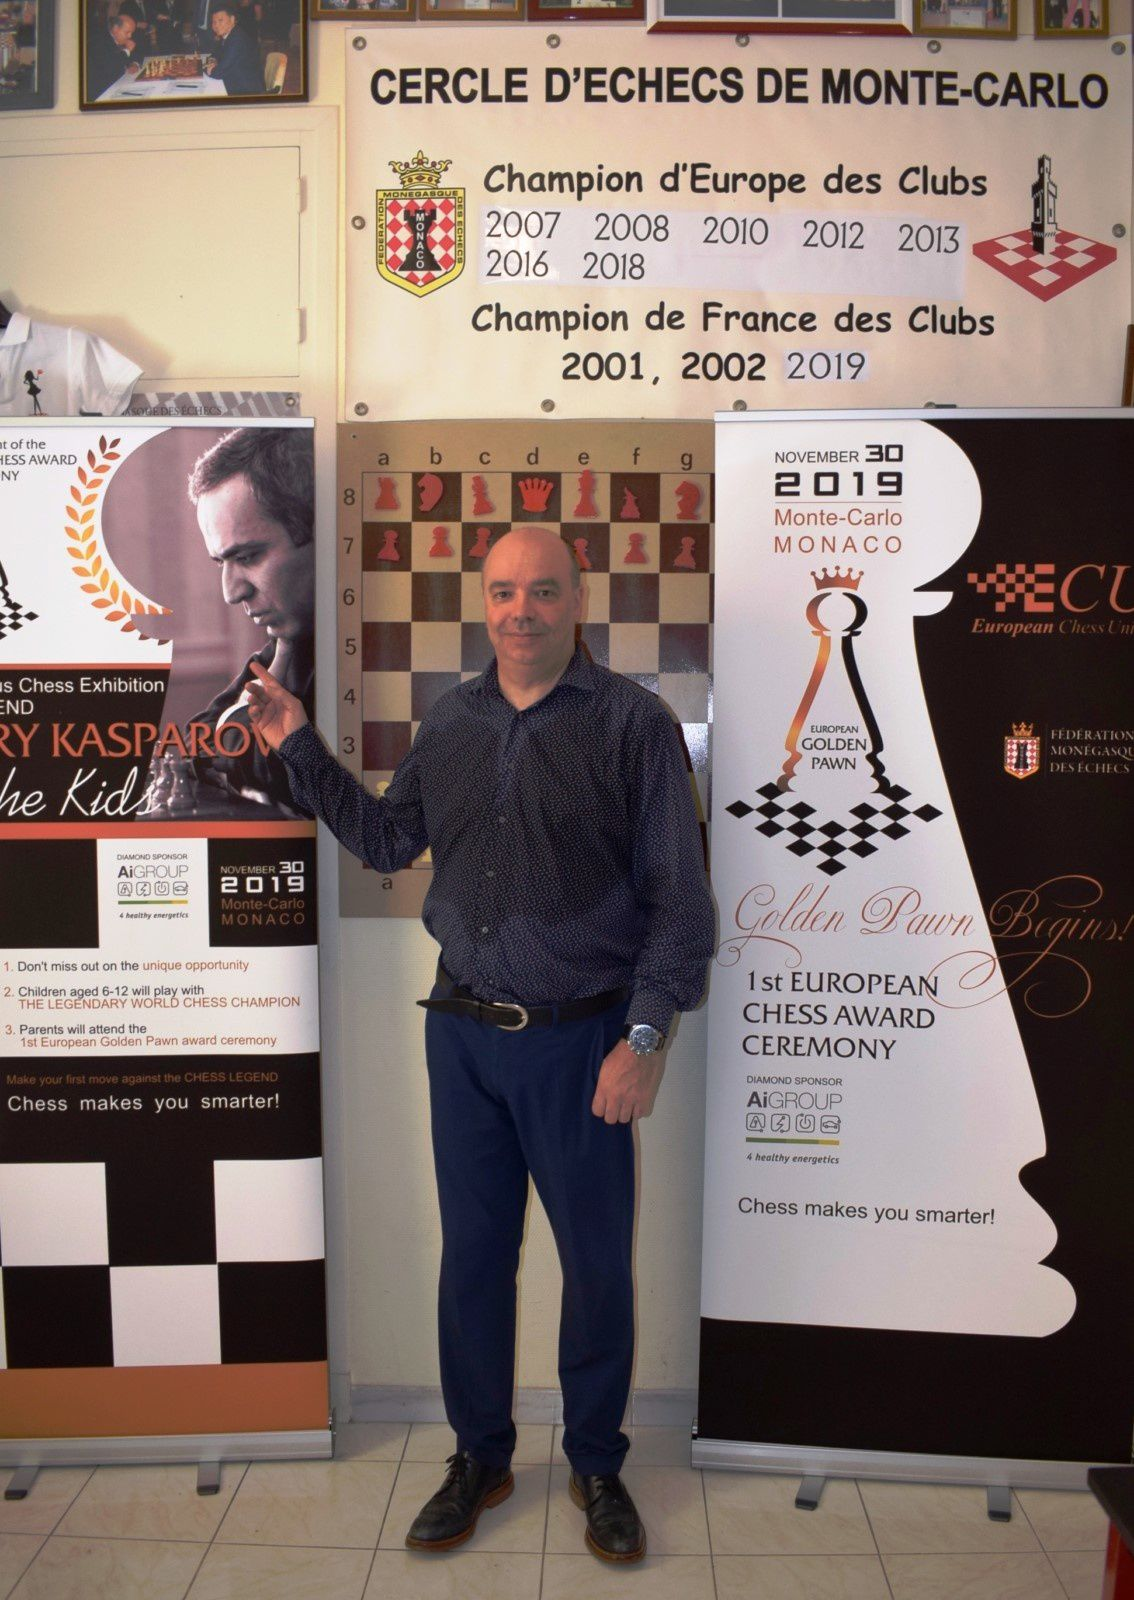 EUROPEAN CHESS WORLD WILL BE HELD IN THE PRINCIPALITY OF MONACO;